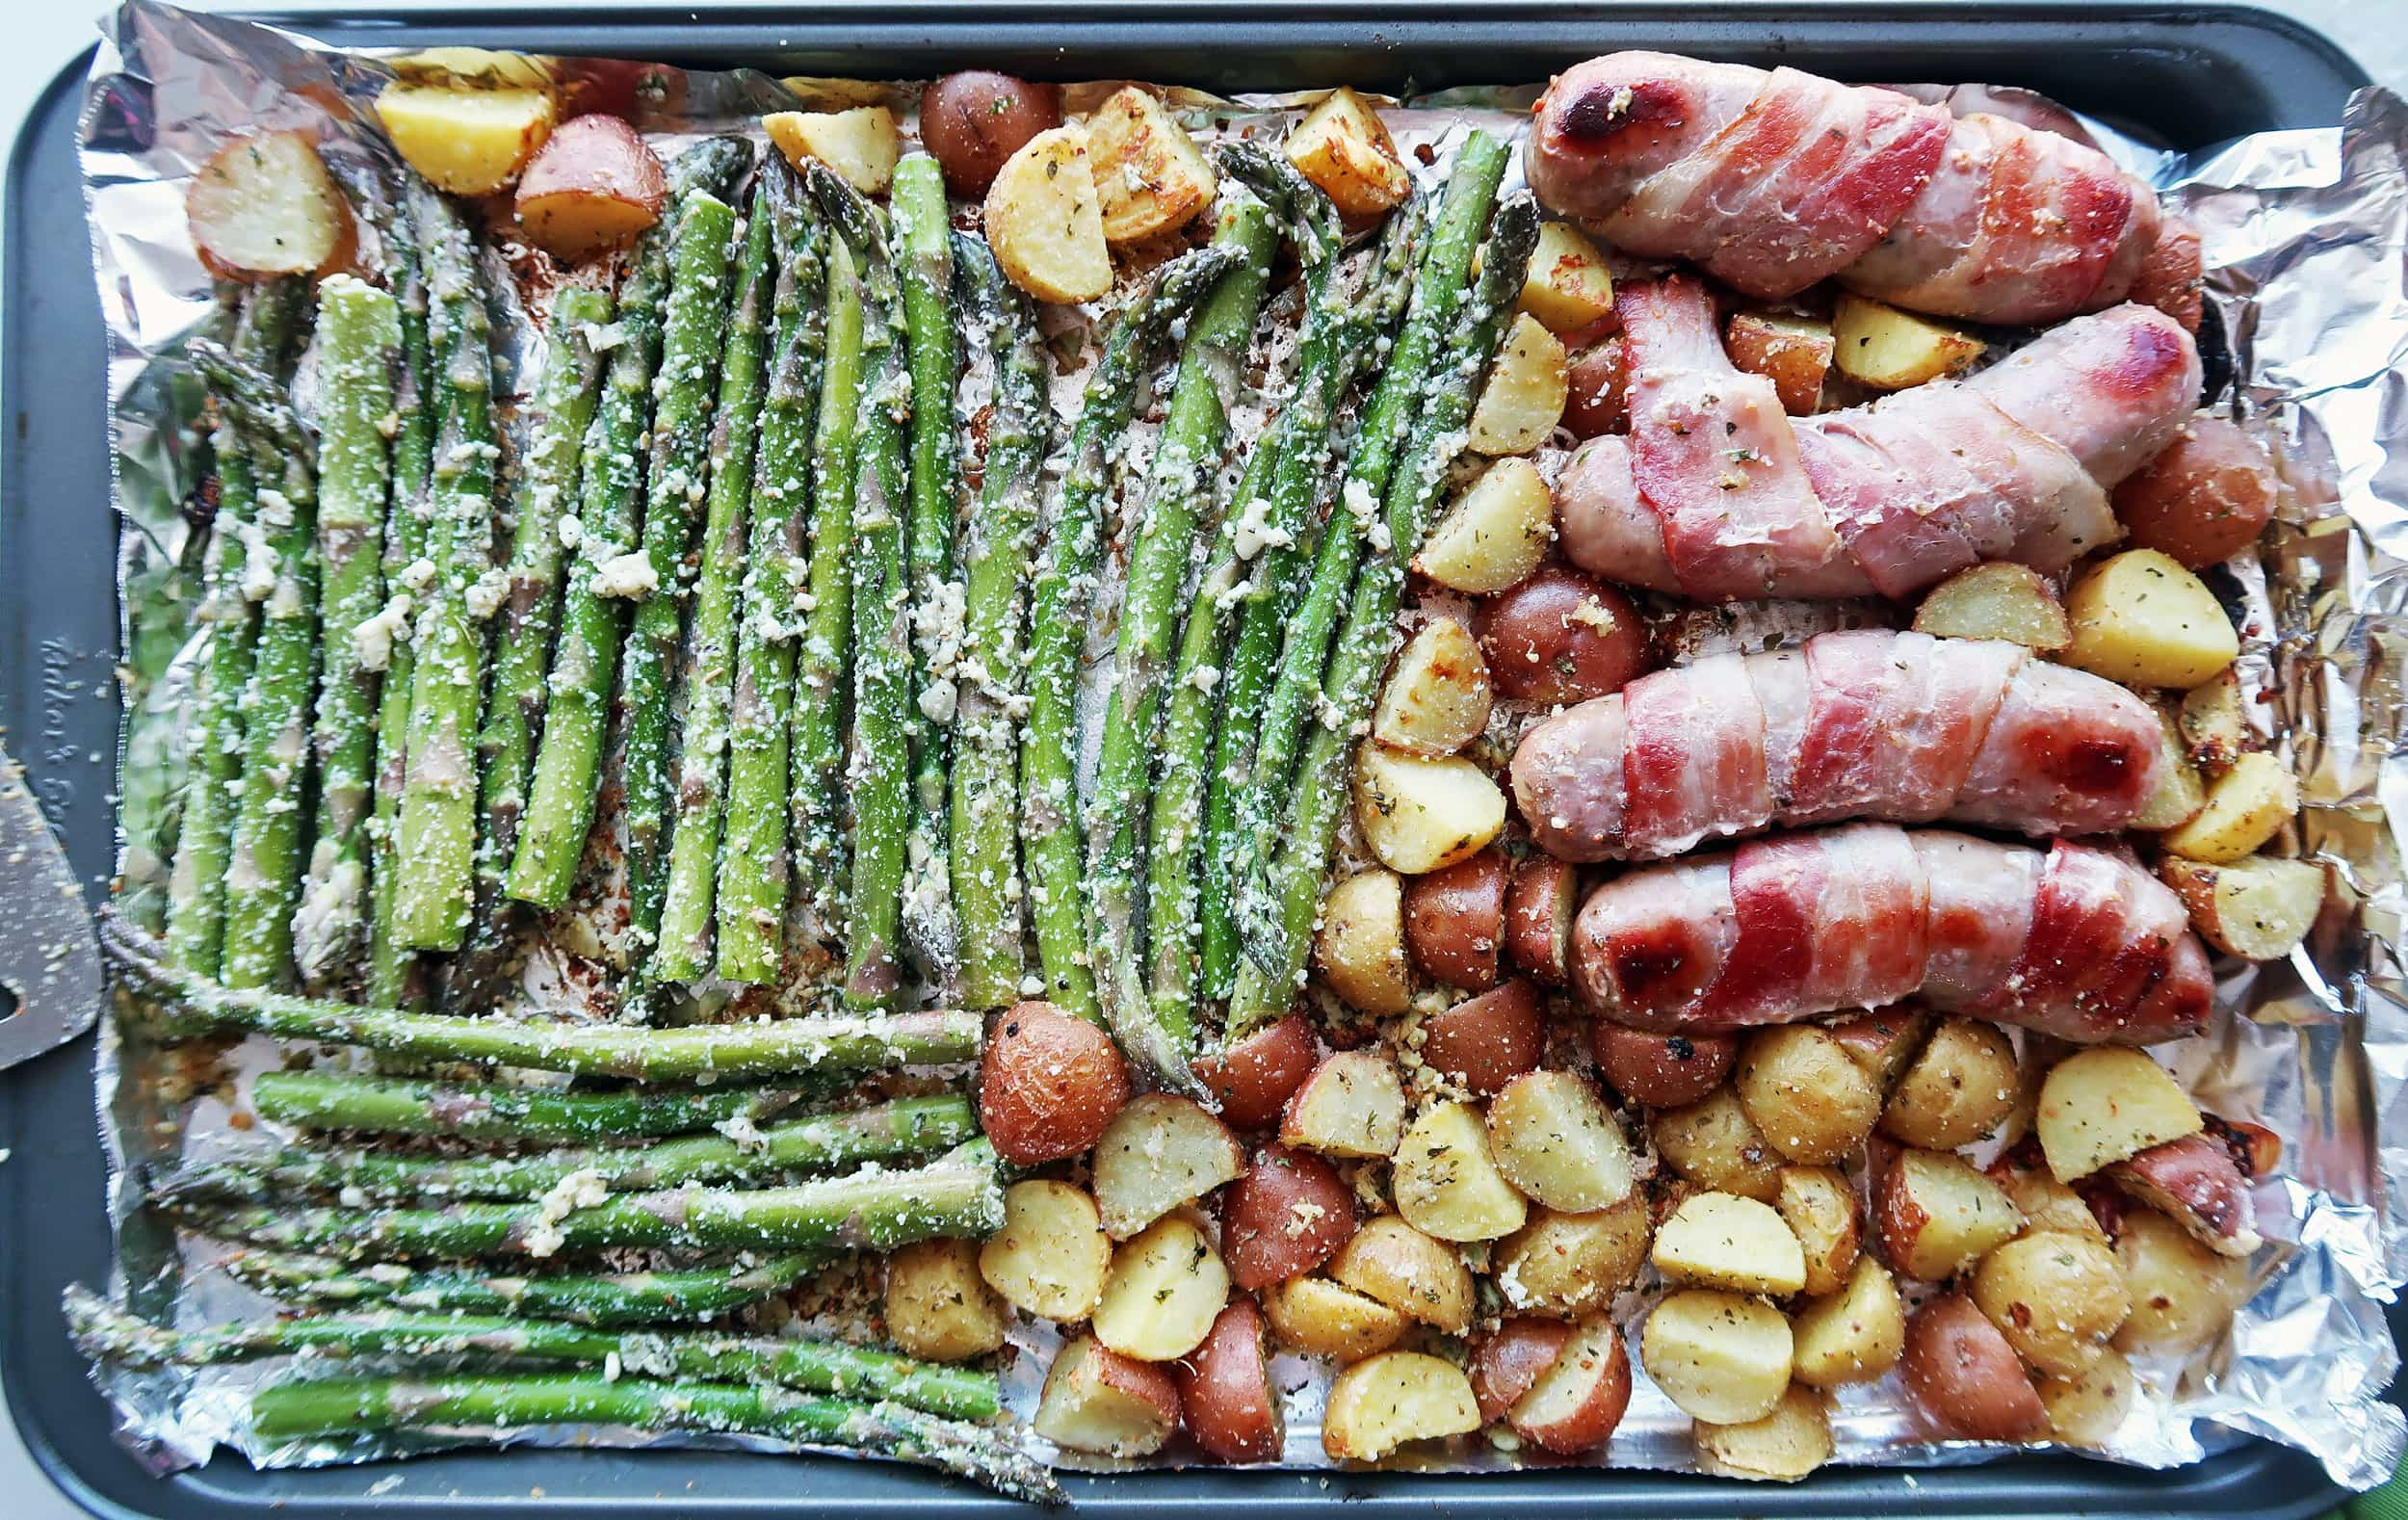 Bacon-wrapped sausages and vegetables on a baking sheet.